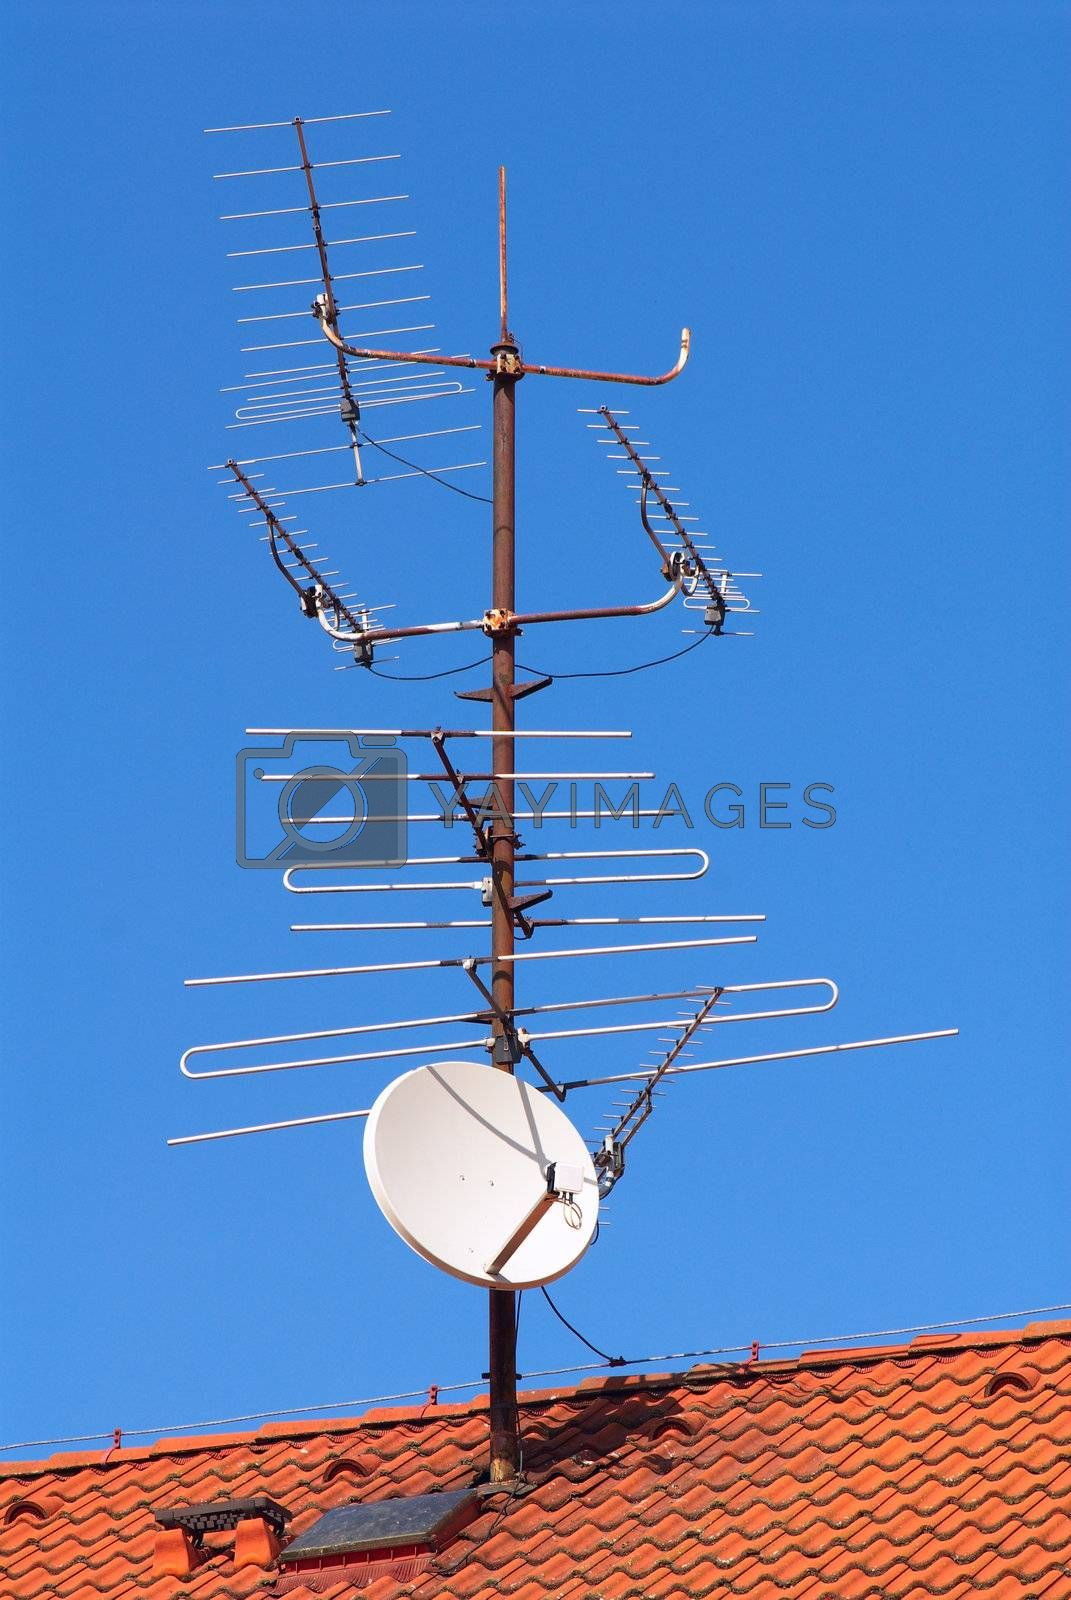 Photo of a roof of the suburban house with the attached aerials of communication